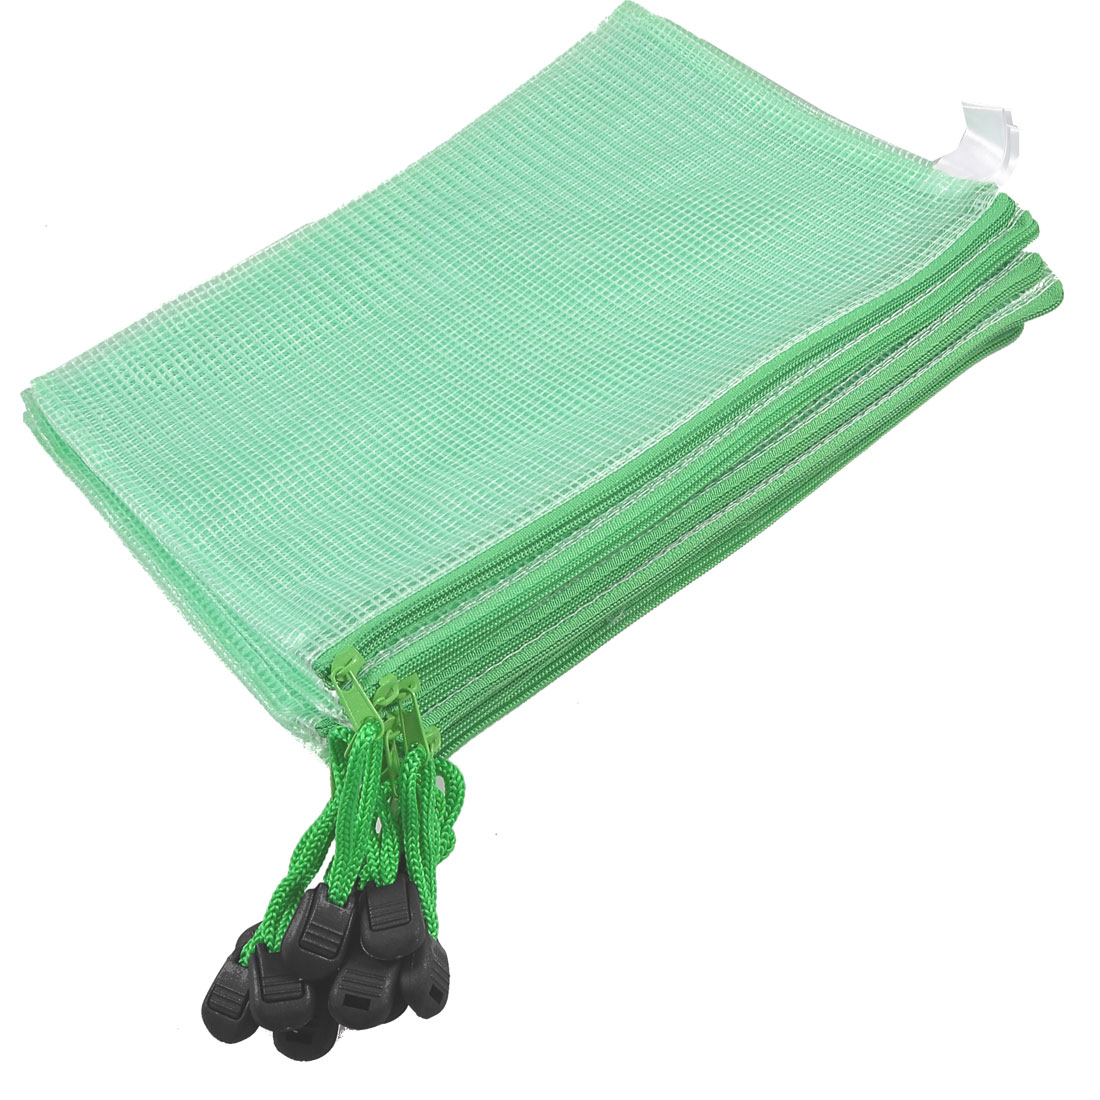 10 Pcs Zipper Closure Green Plastic Water Resistant A5 File Paper Holder Bag